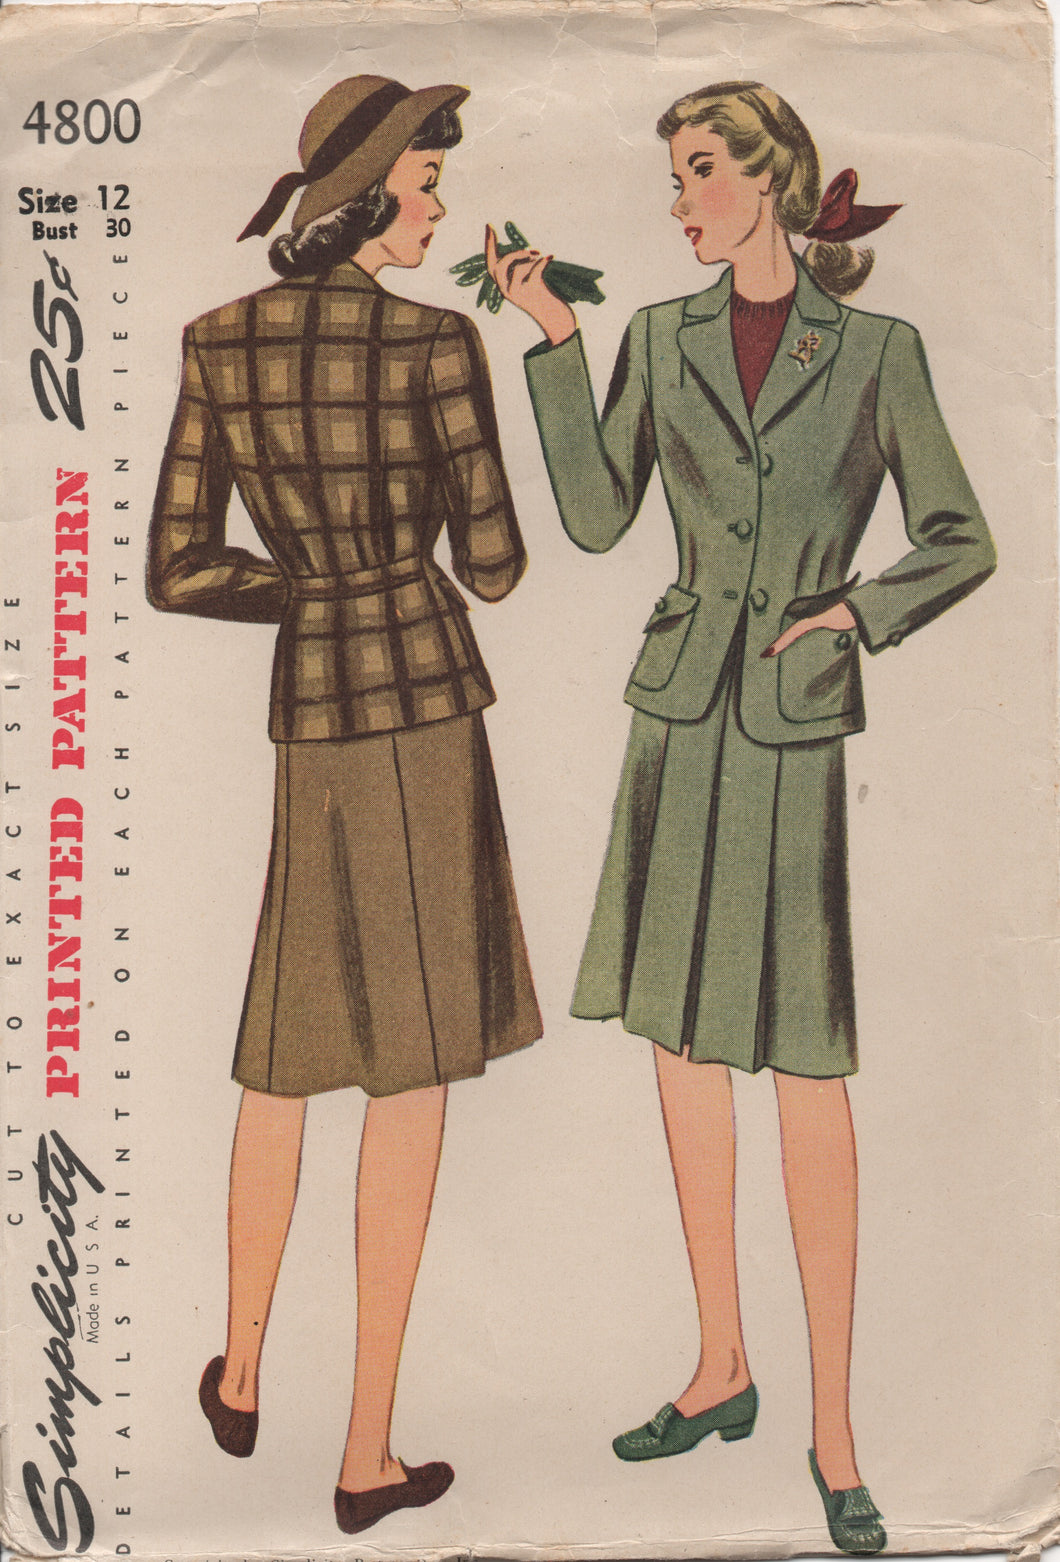 "1940's Simplicity Two Piece Suit with Six Gore Skirt - Bust 30"" - No. 4800"